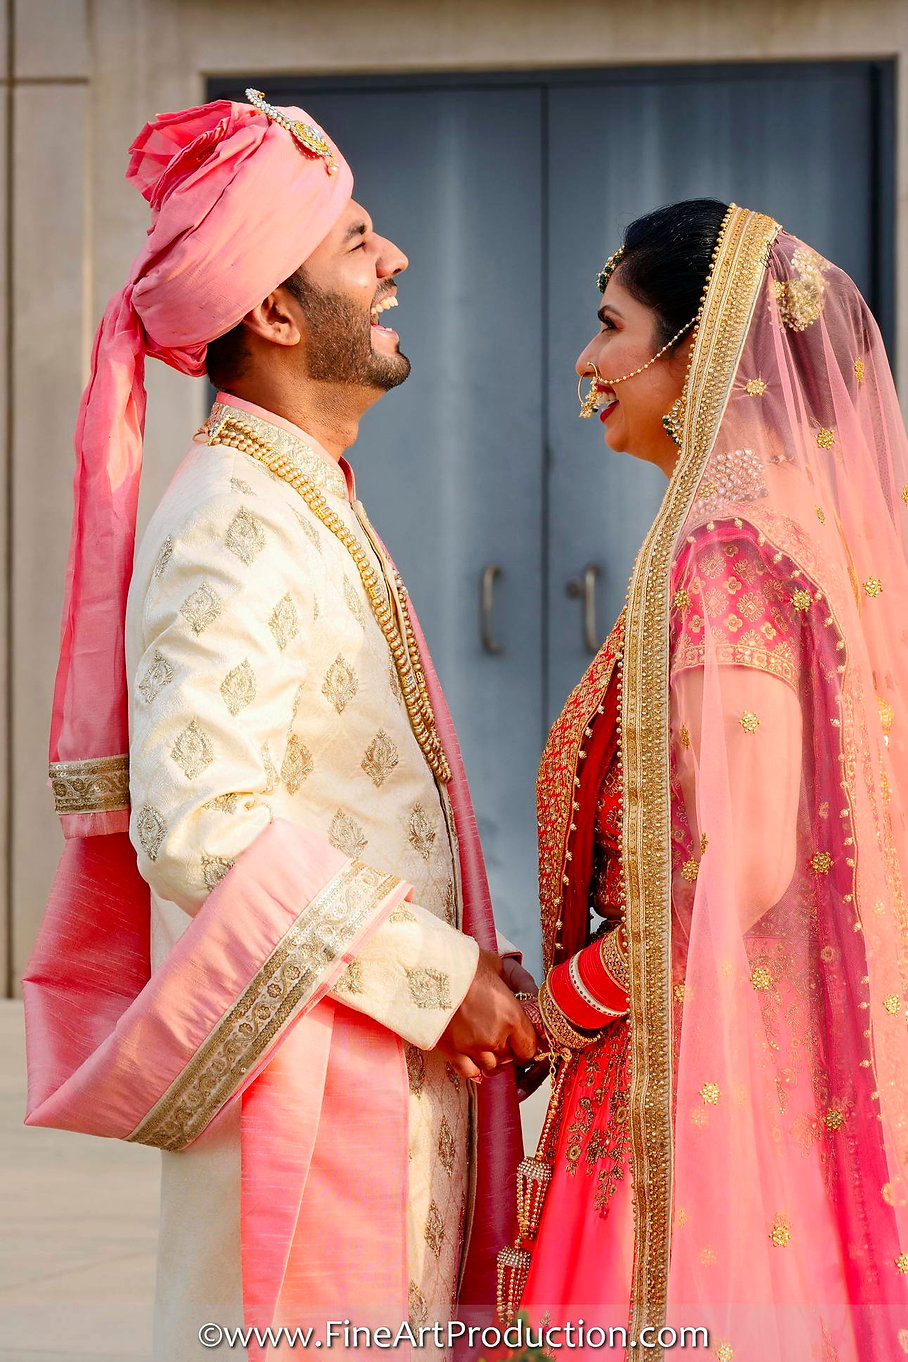 punjabi-wedding-augusta-ga.jpg